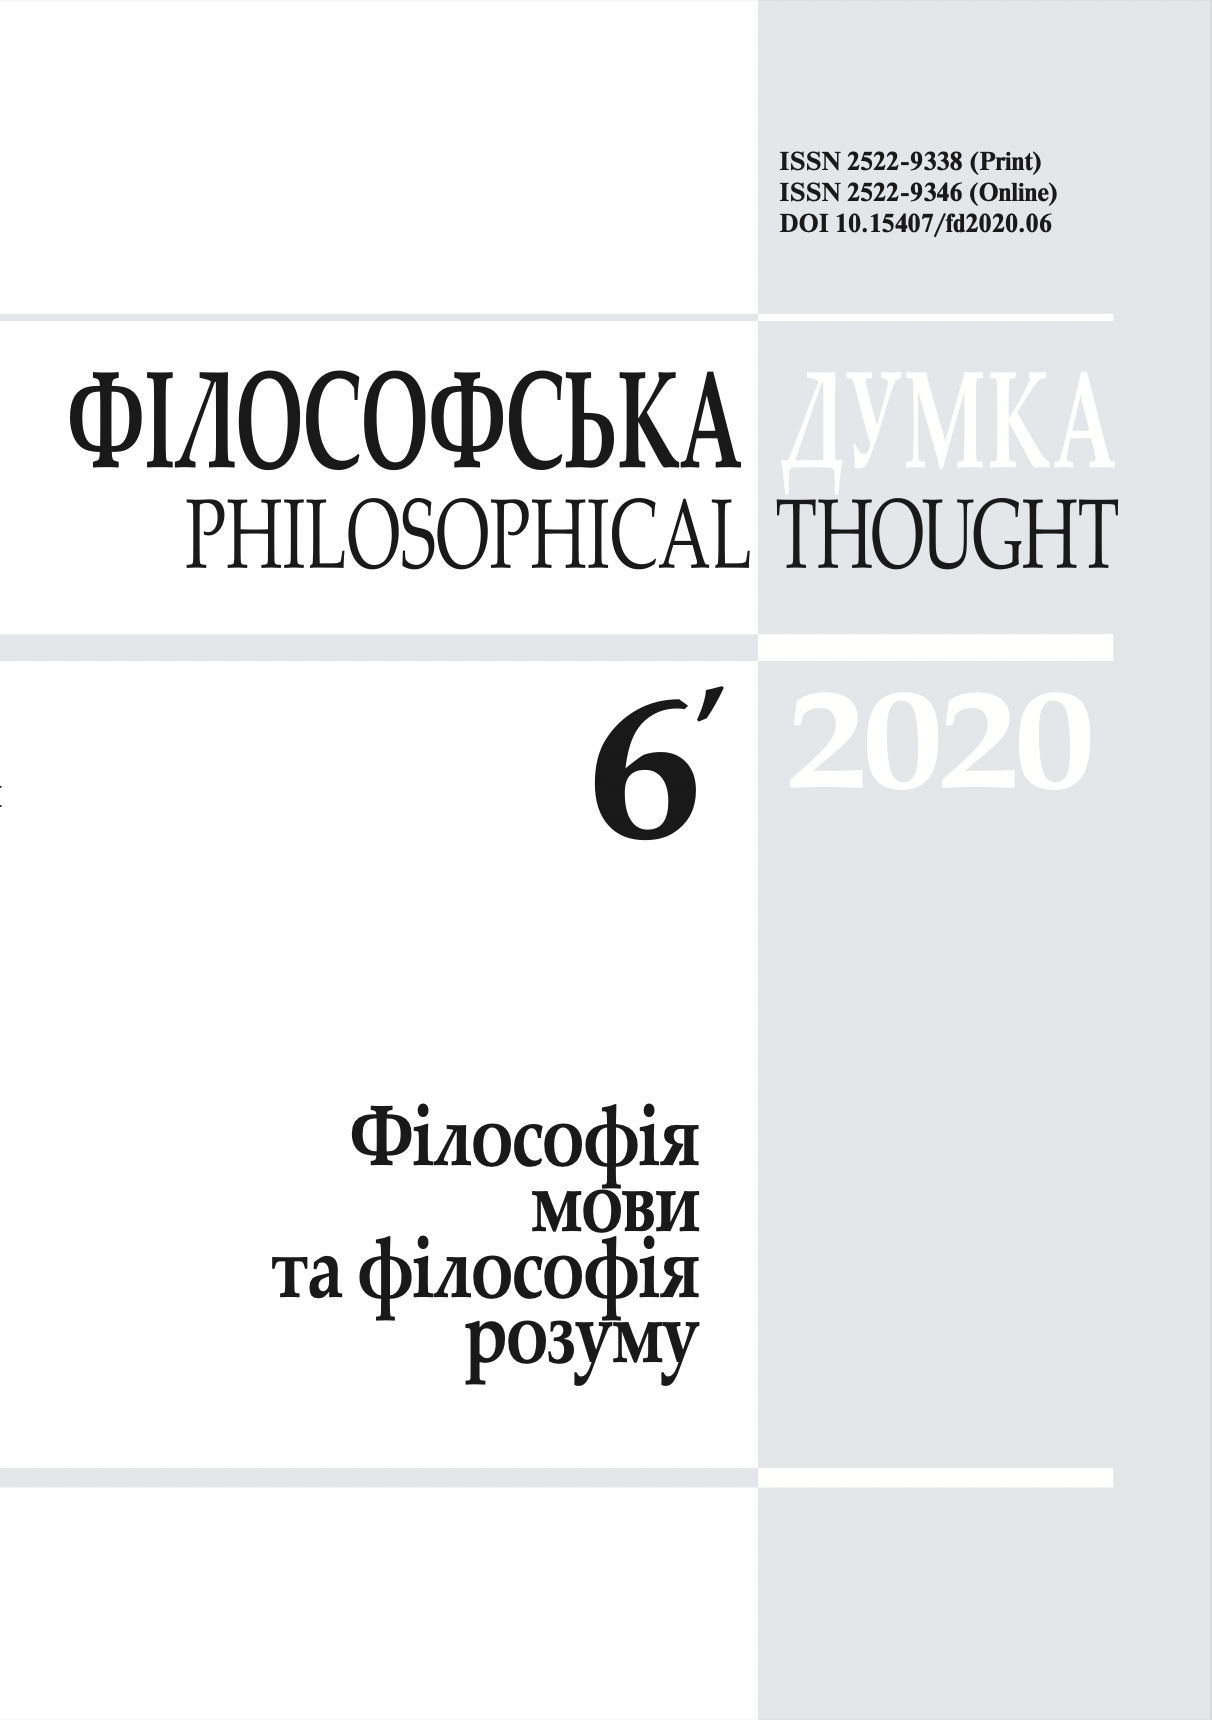 View No. 6 (2020): Philosophical thought